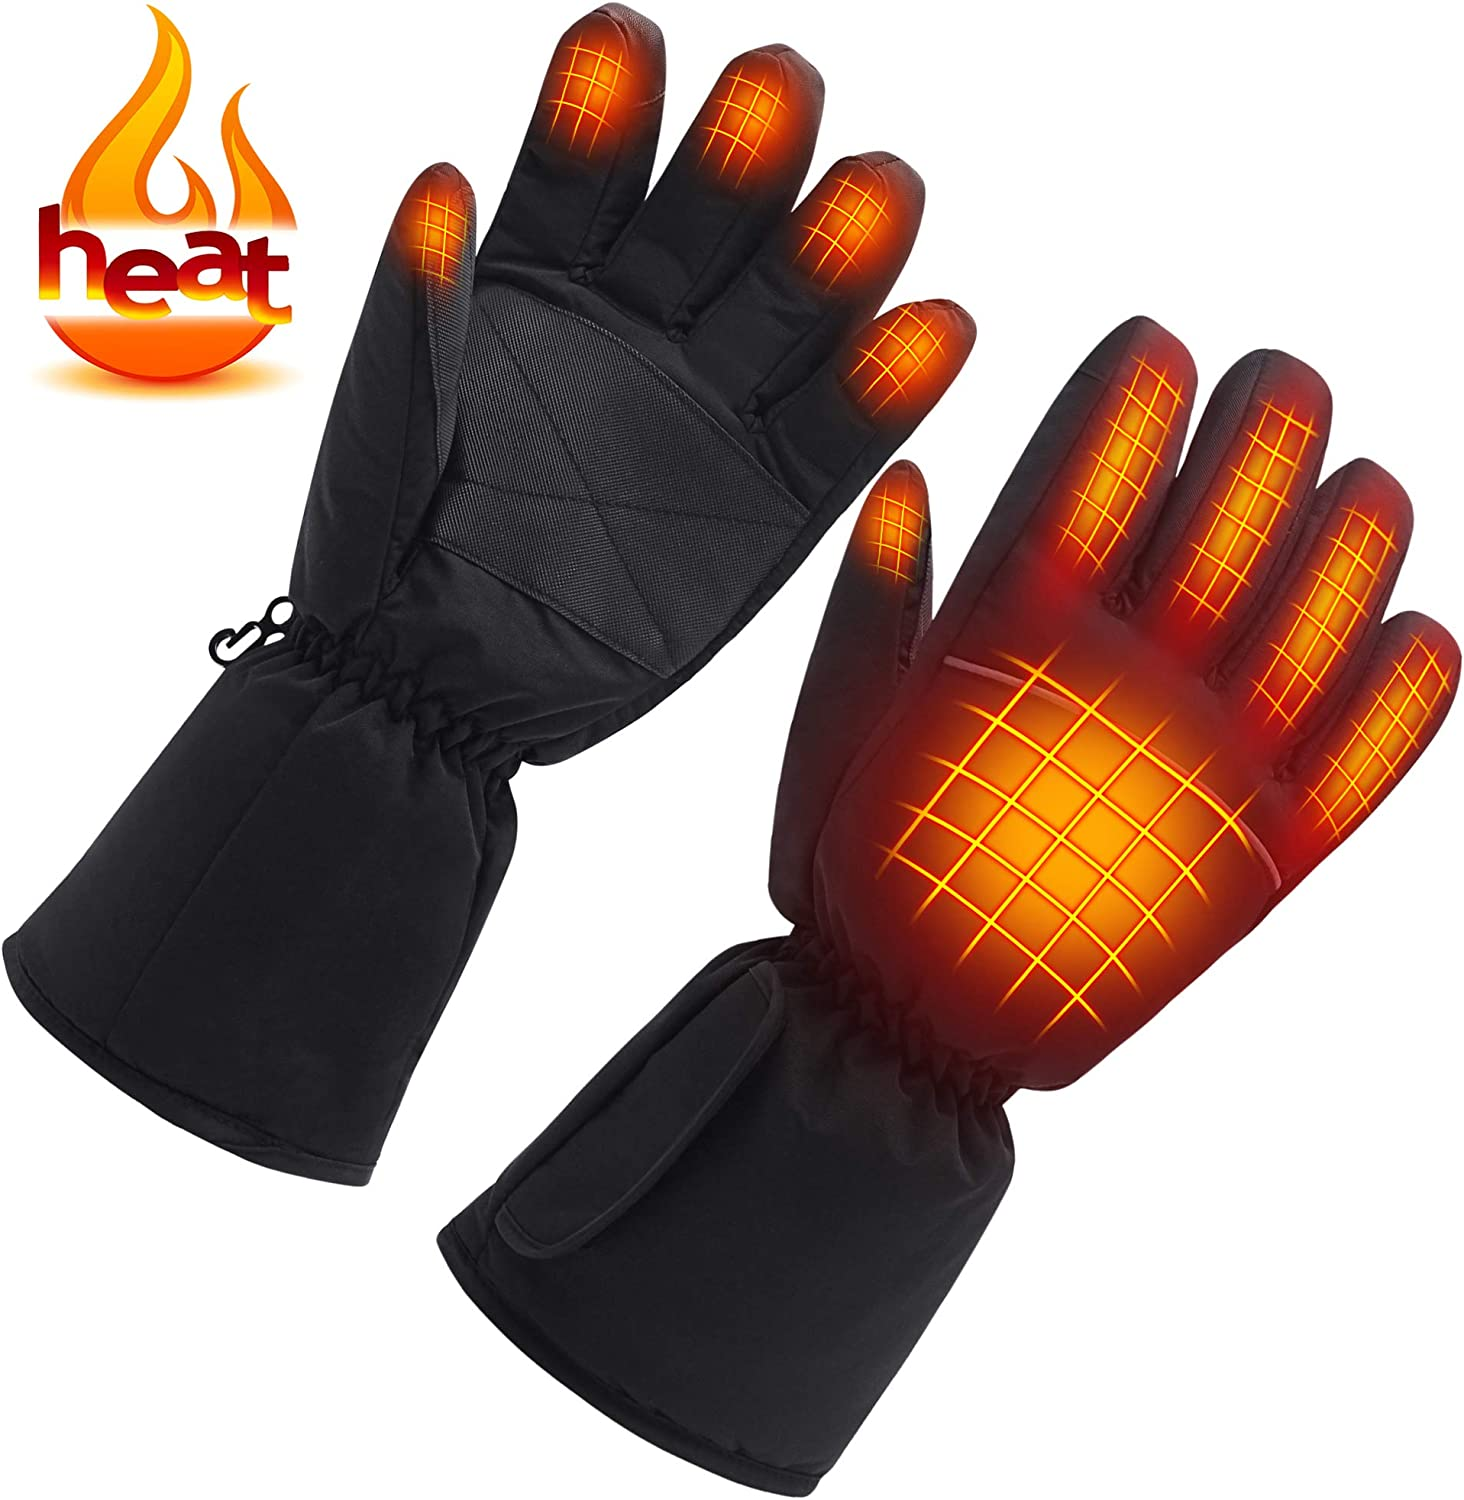 Rechargeable Heated Gloves for Man & Woman, AA Battery Operated Motorcycle Heat Gloves Kits,Winter Warm Arthritic Gloves Texting Thermal Electric Gloves for Hiking/Skiing/Hunting Outdoor Sports